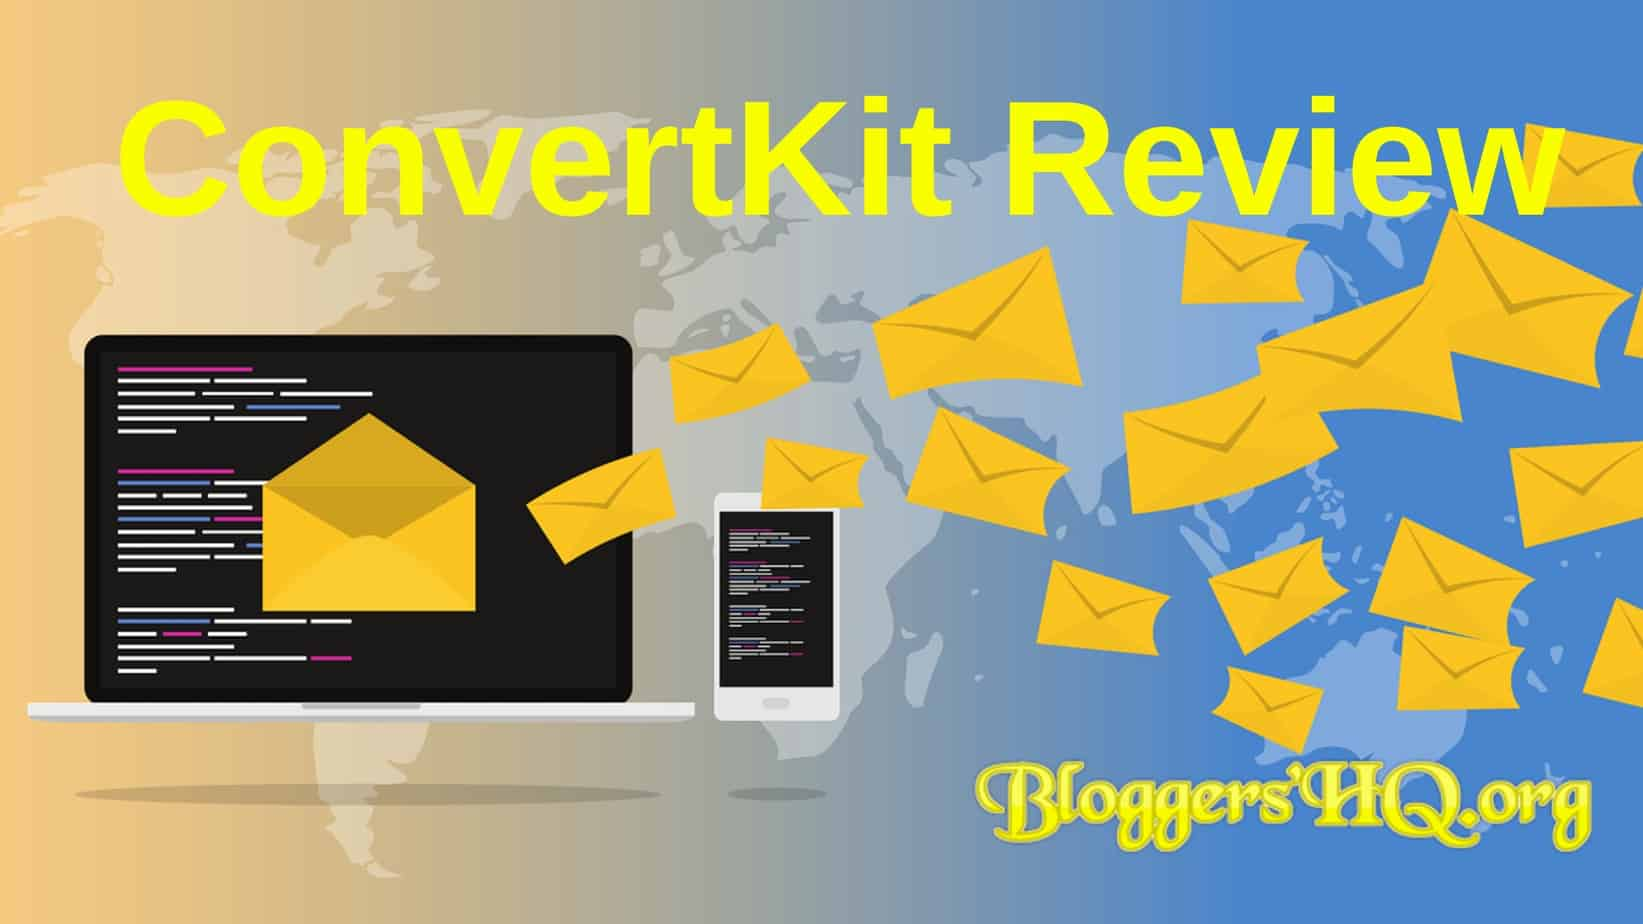 Buy Convertkit Promo Online Coupons 10 Off